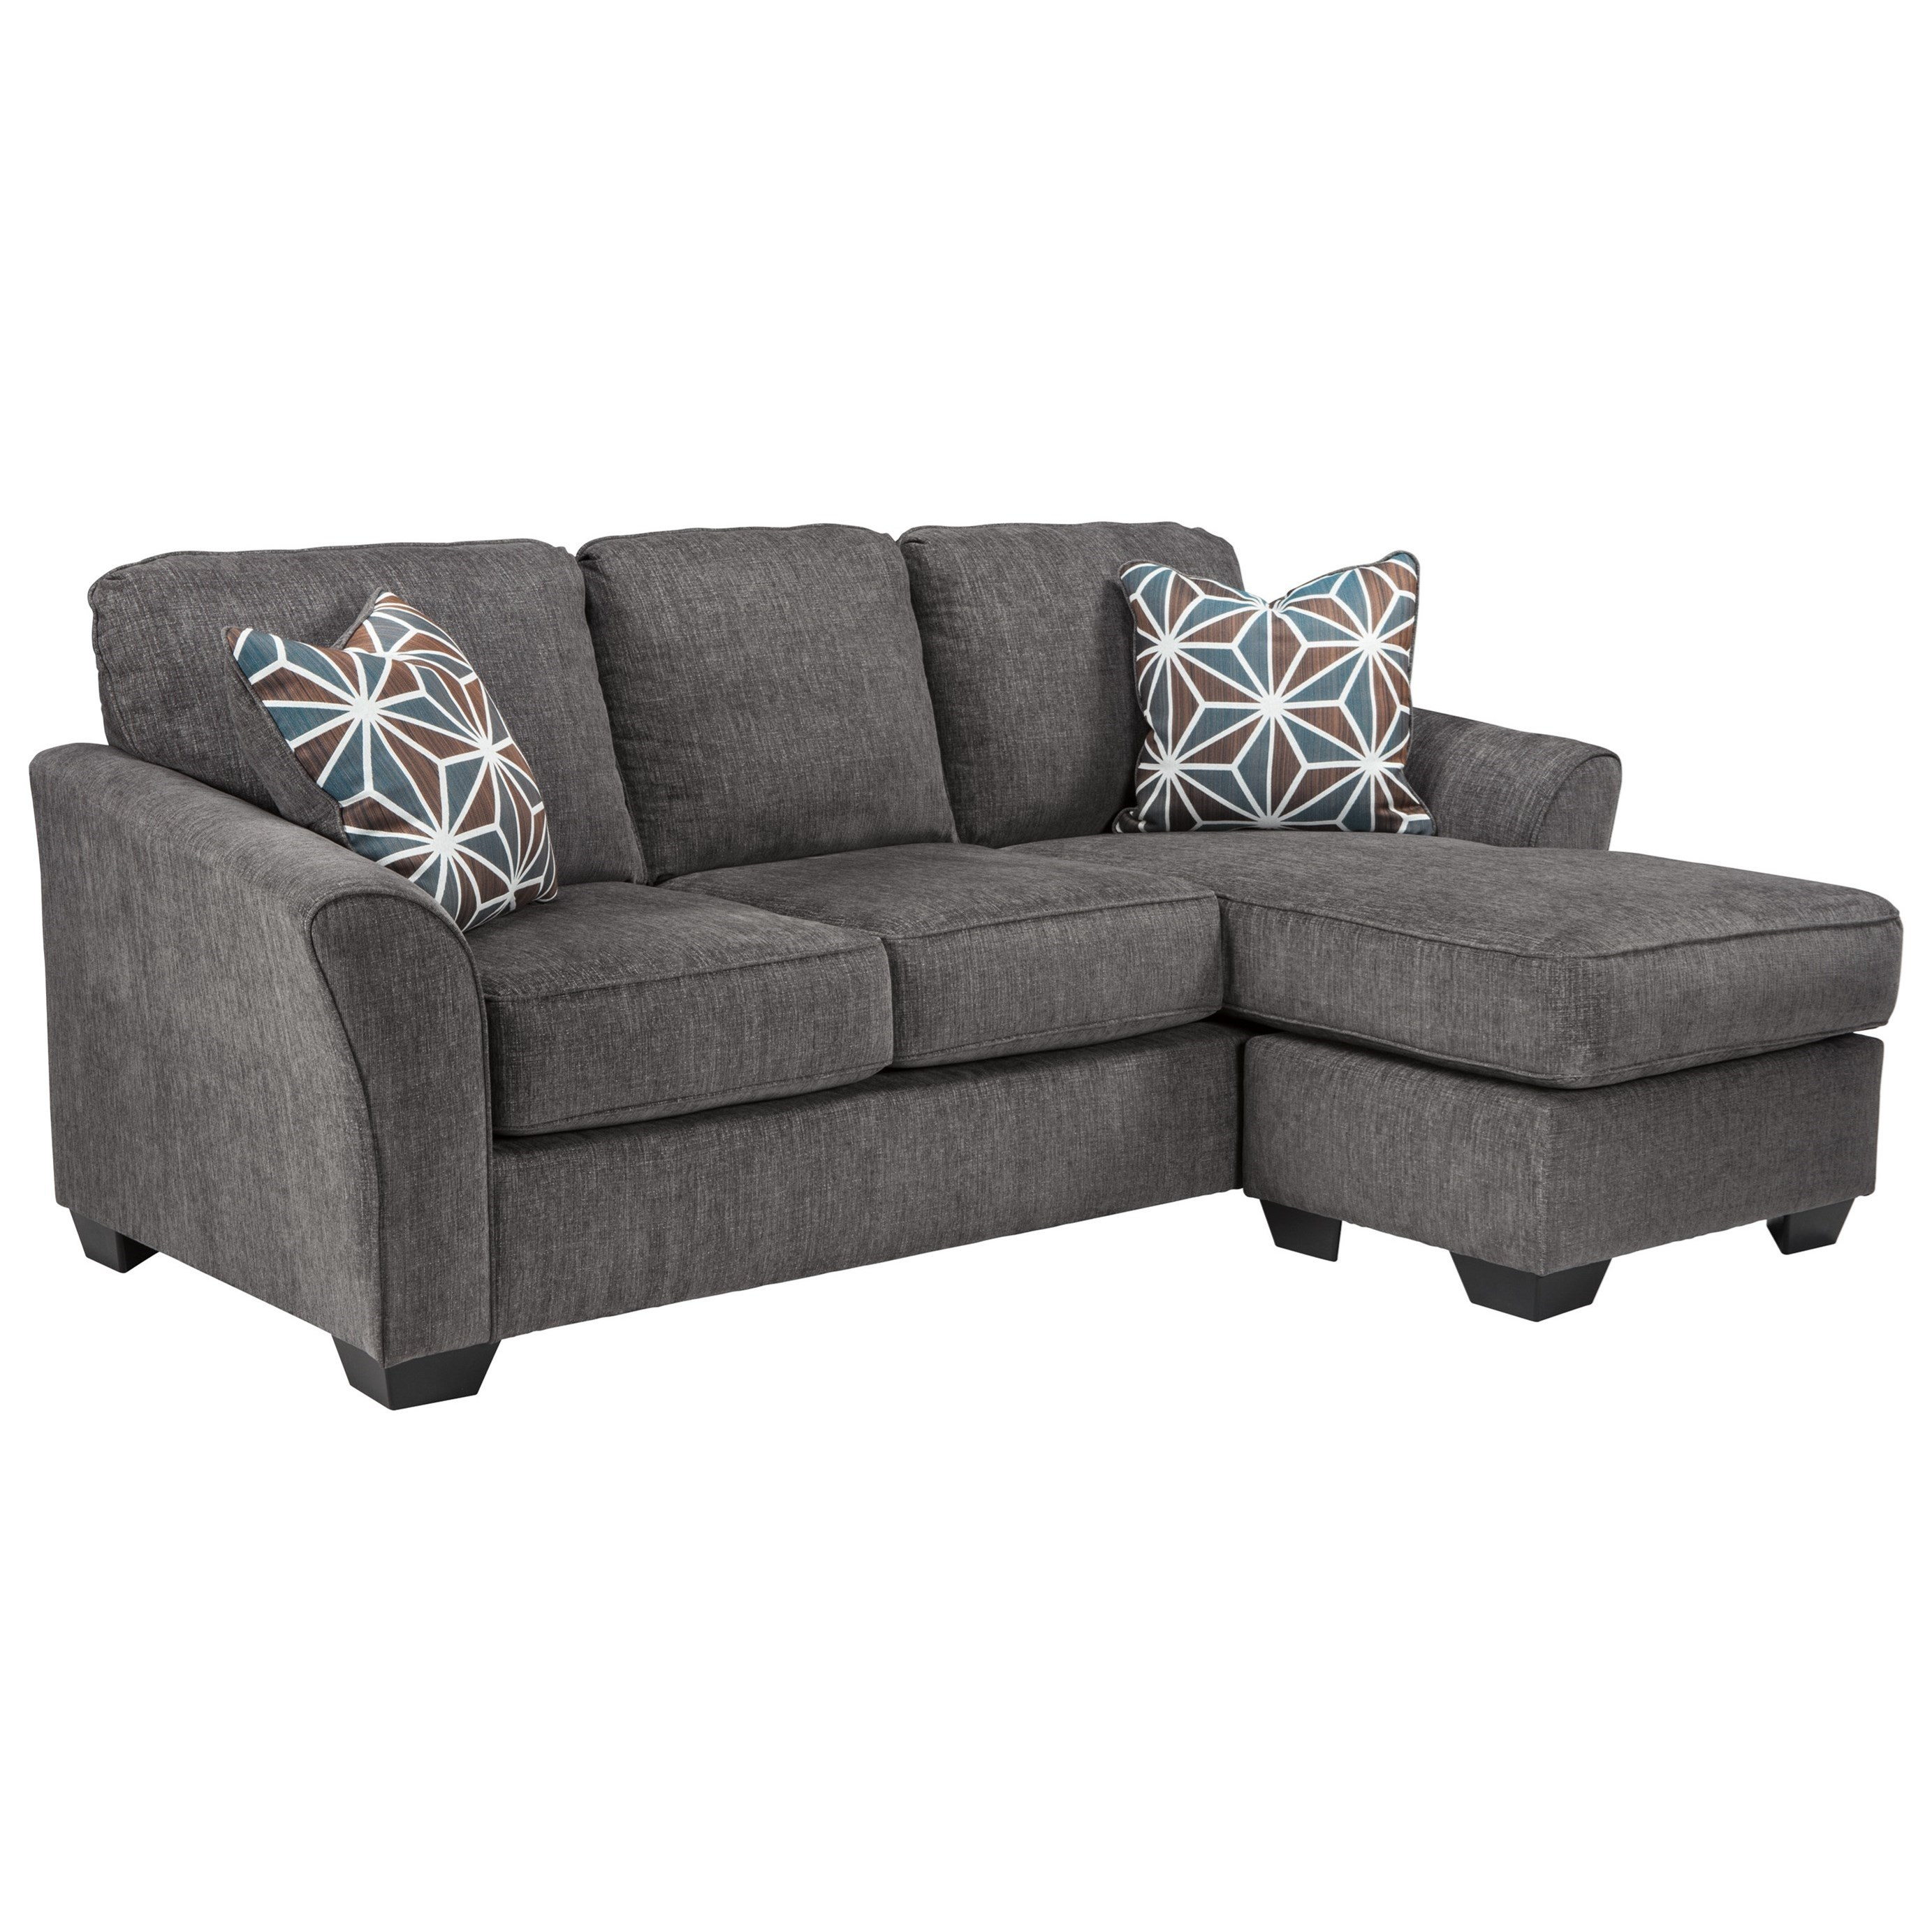 - Benchcraft Brise Casual Contemporary Queen Sofa Chaise Sleeper